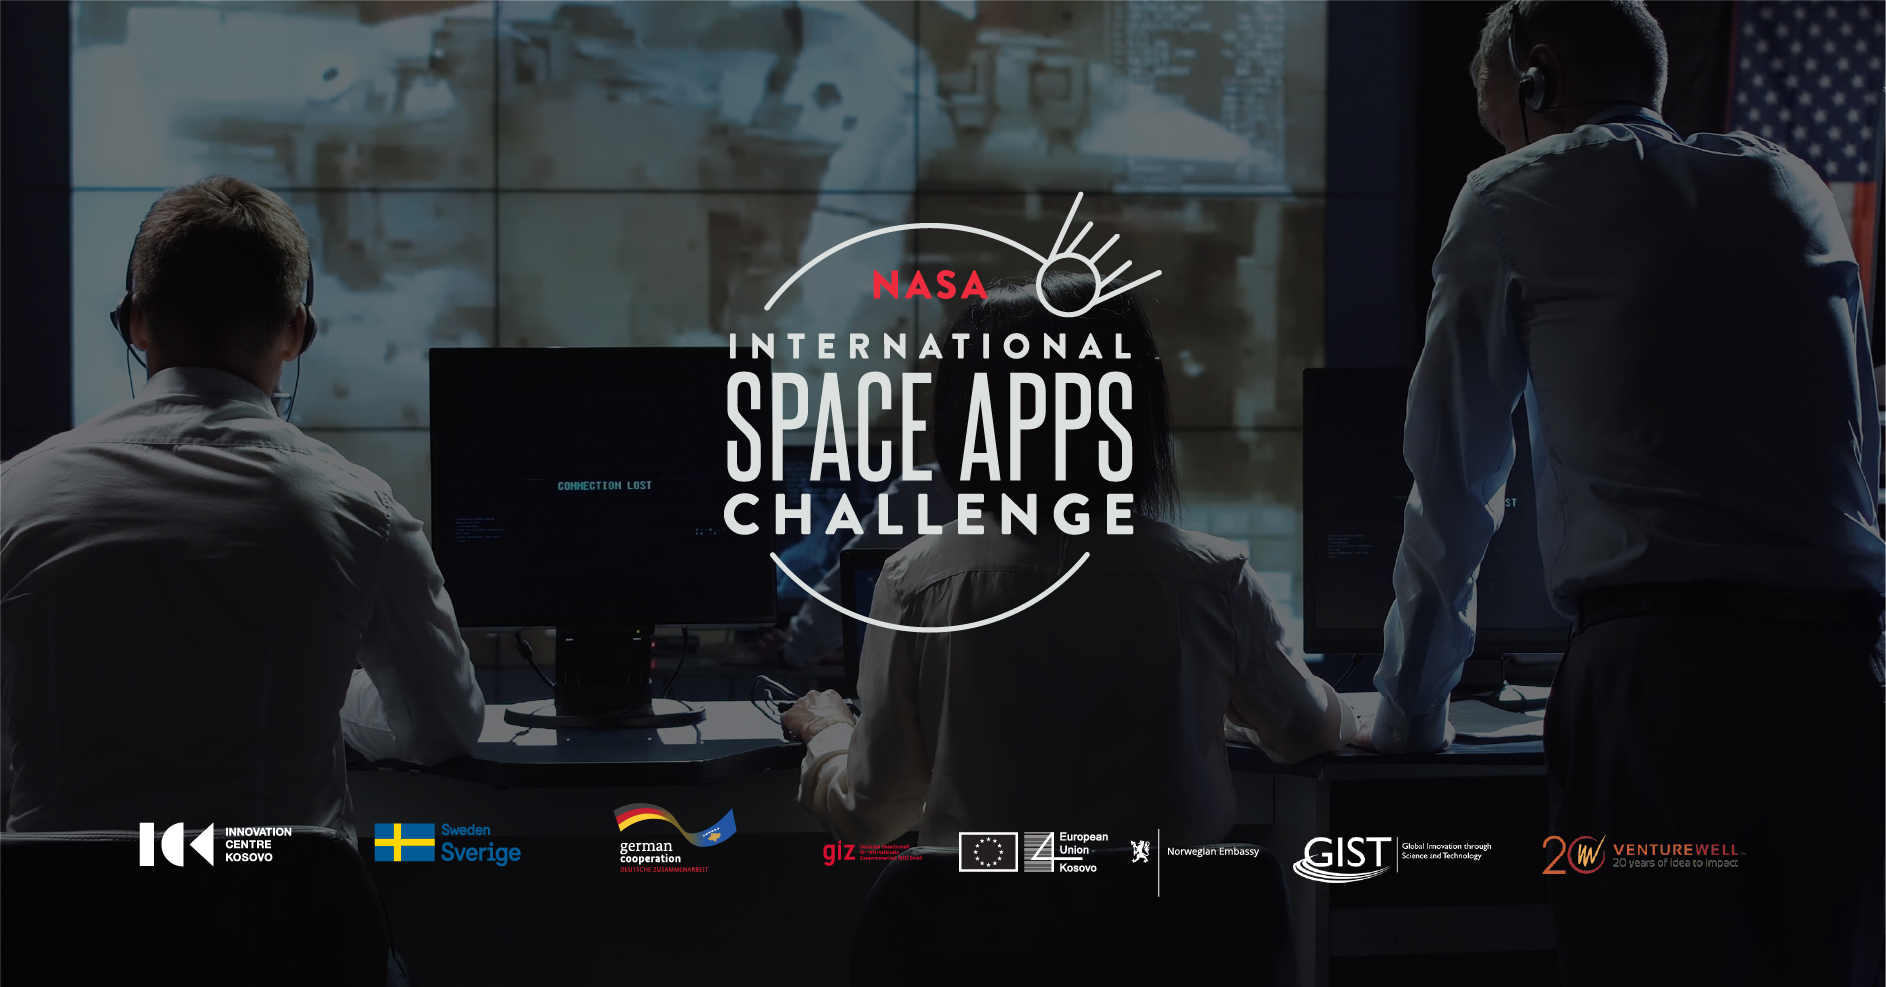 NASA Space Apps 2020: A Digital Stage in a Digital Age